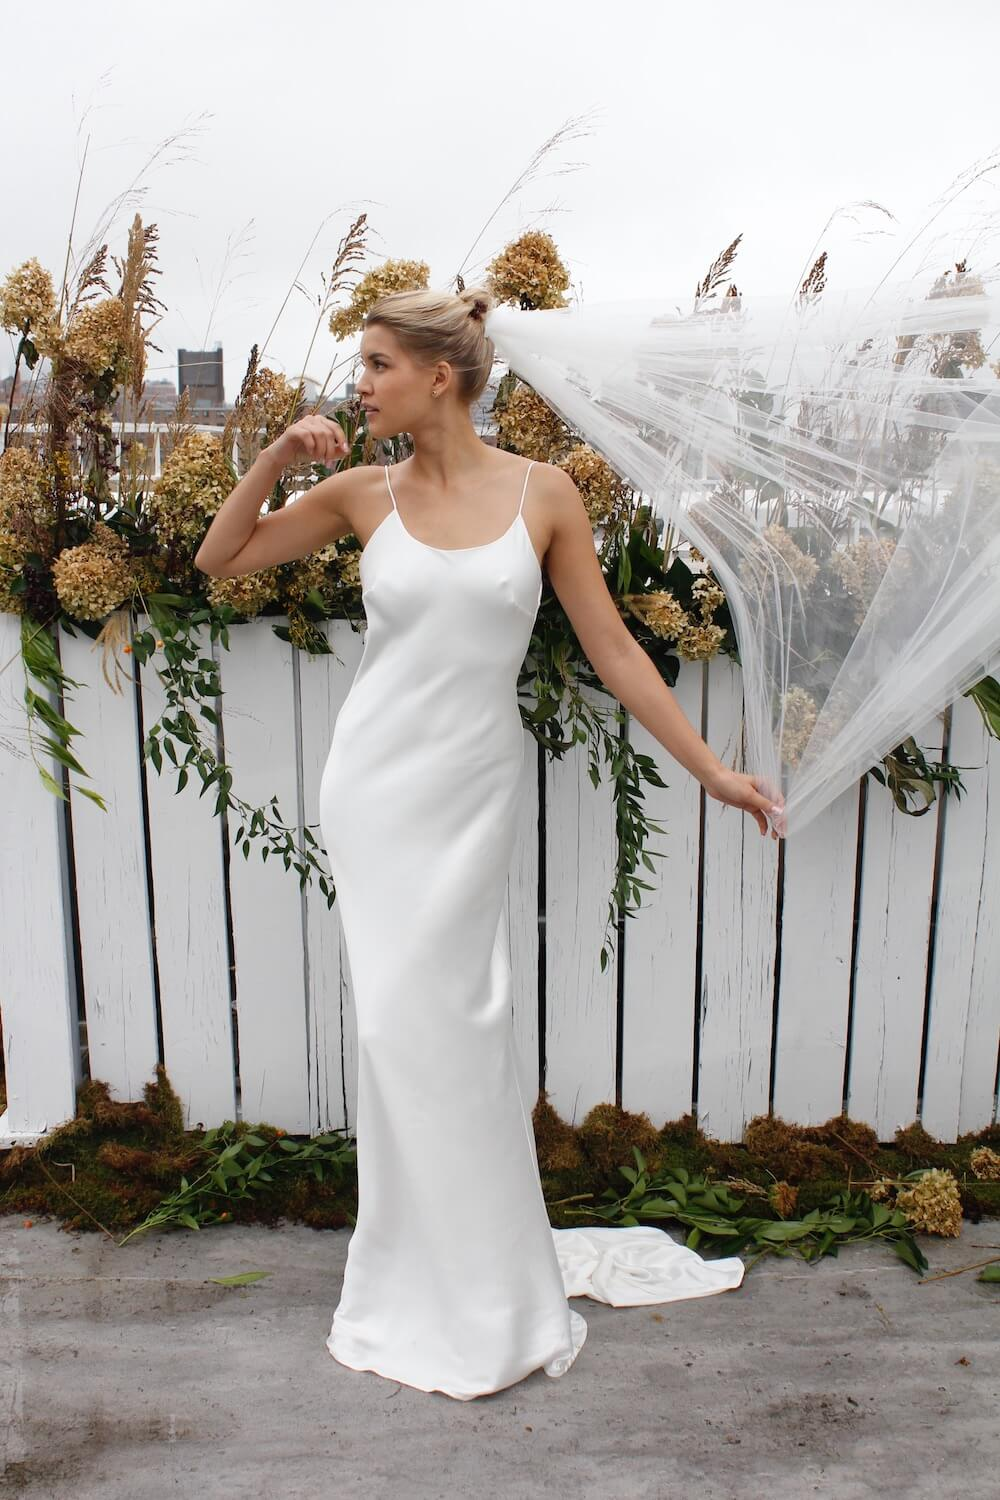 Emerge wedding dress by Fiona Claire featured on LOVE FIND CO.